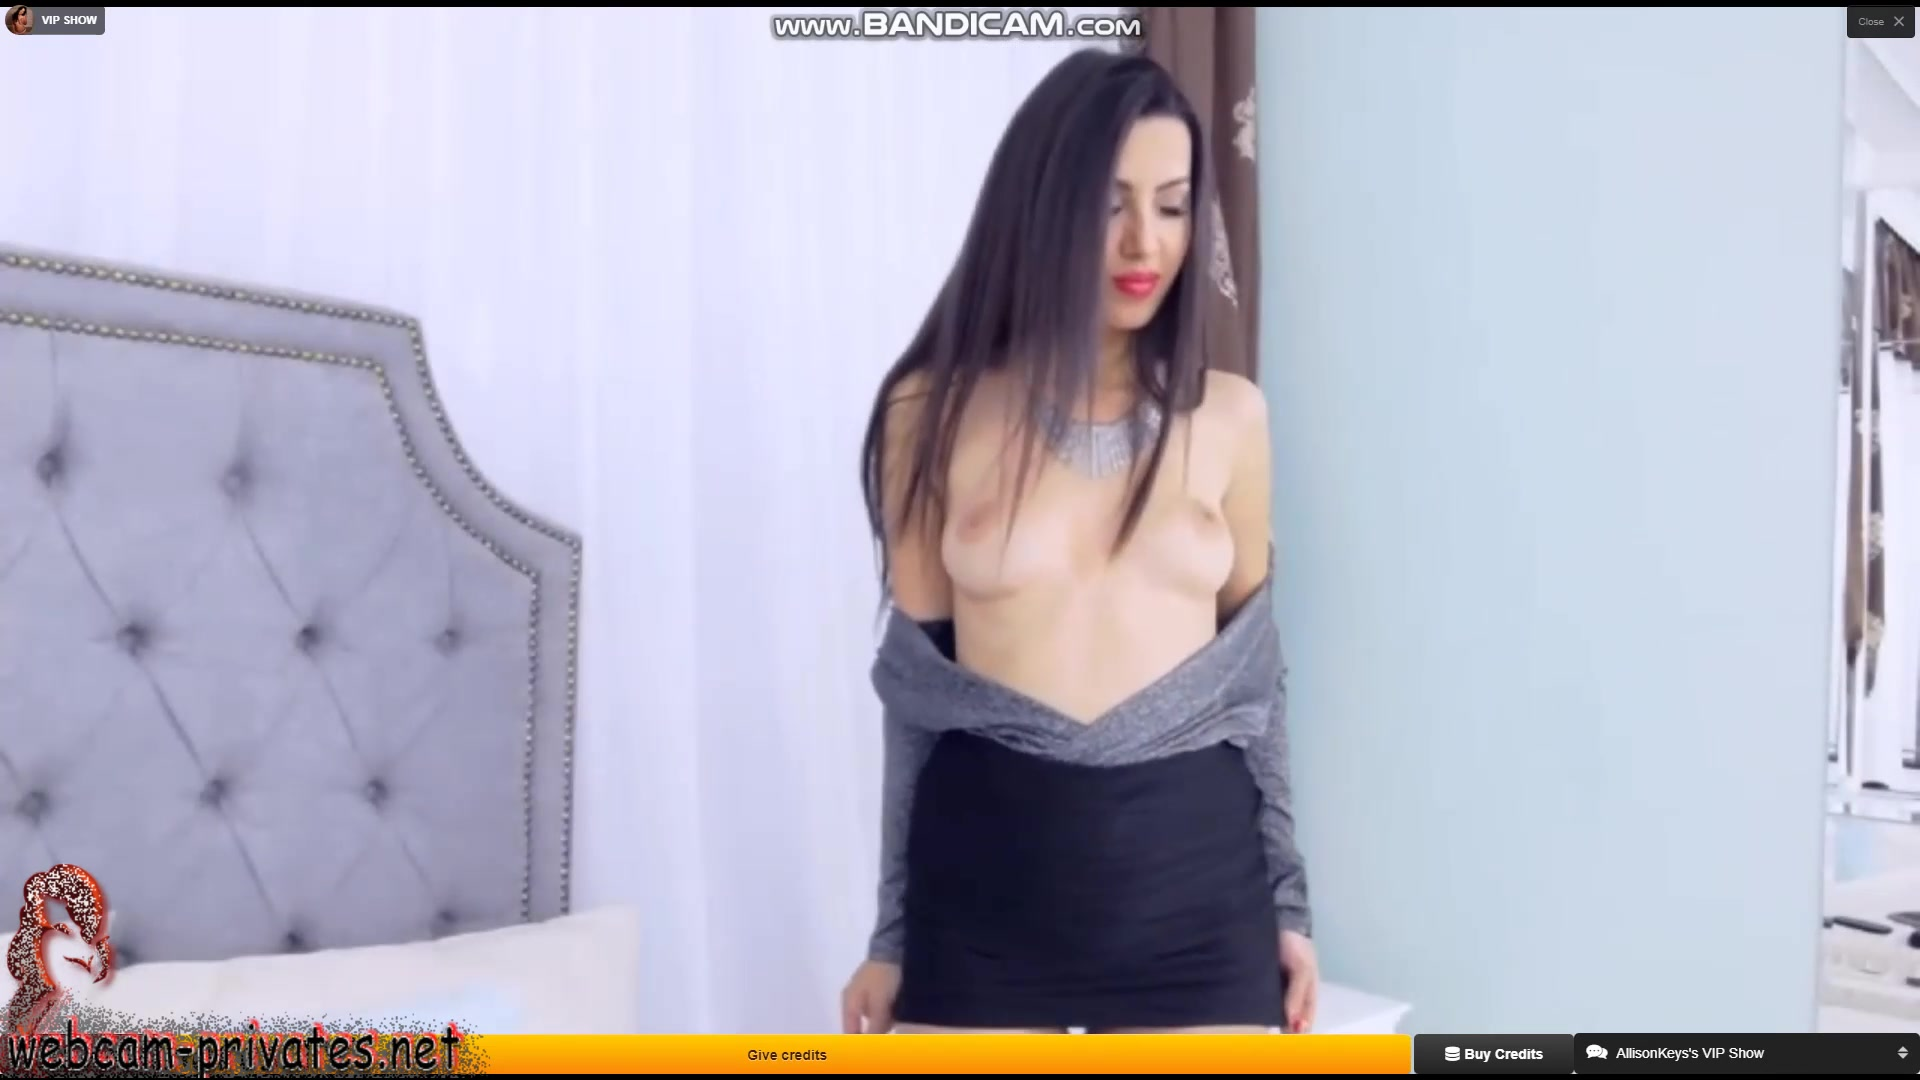 Alluring sexy shaped brunette Allisonkeys is showing off her tight small boobies and yummy butt